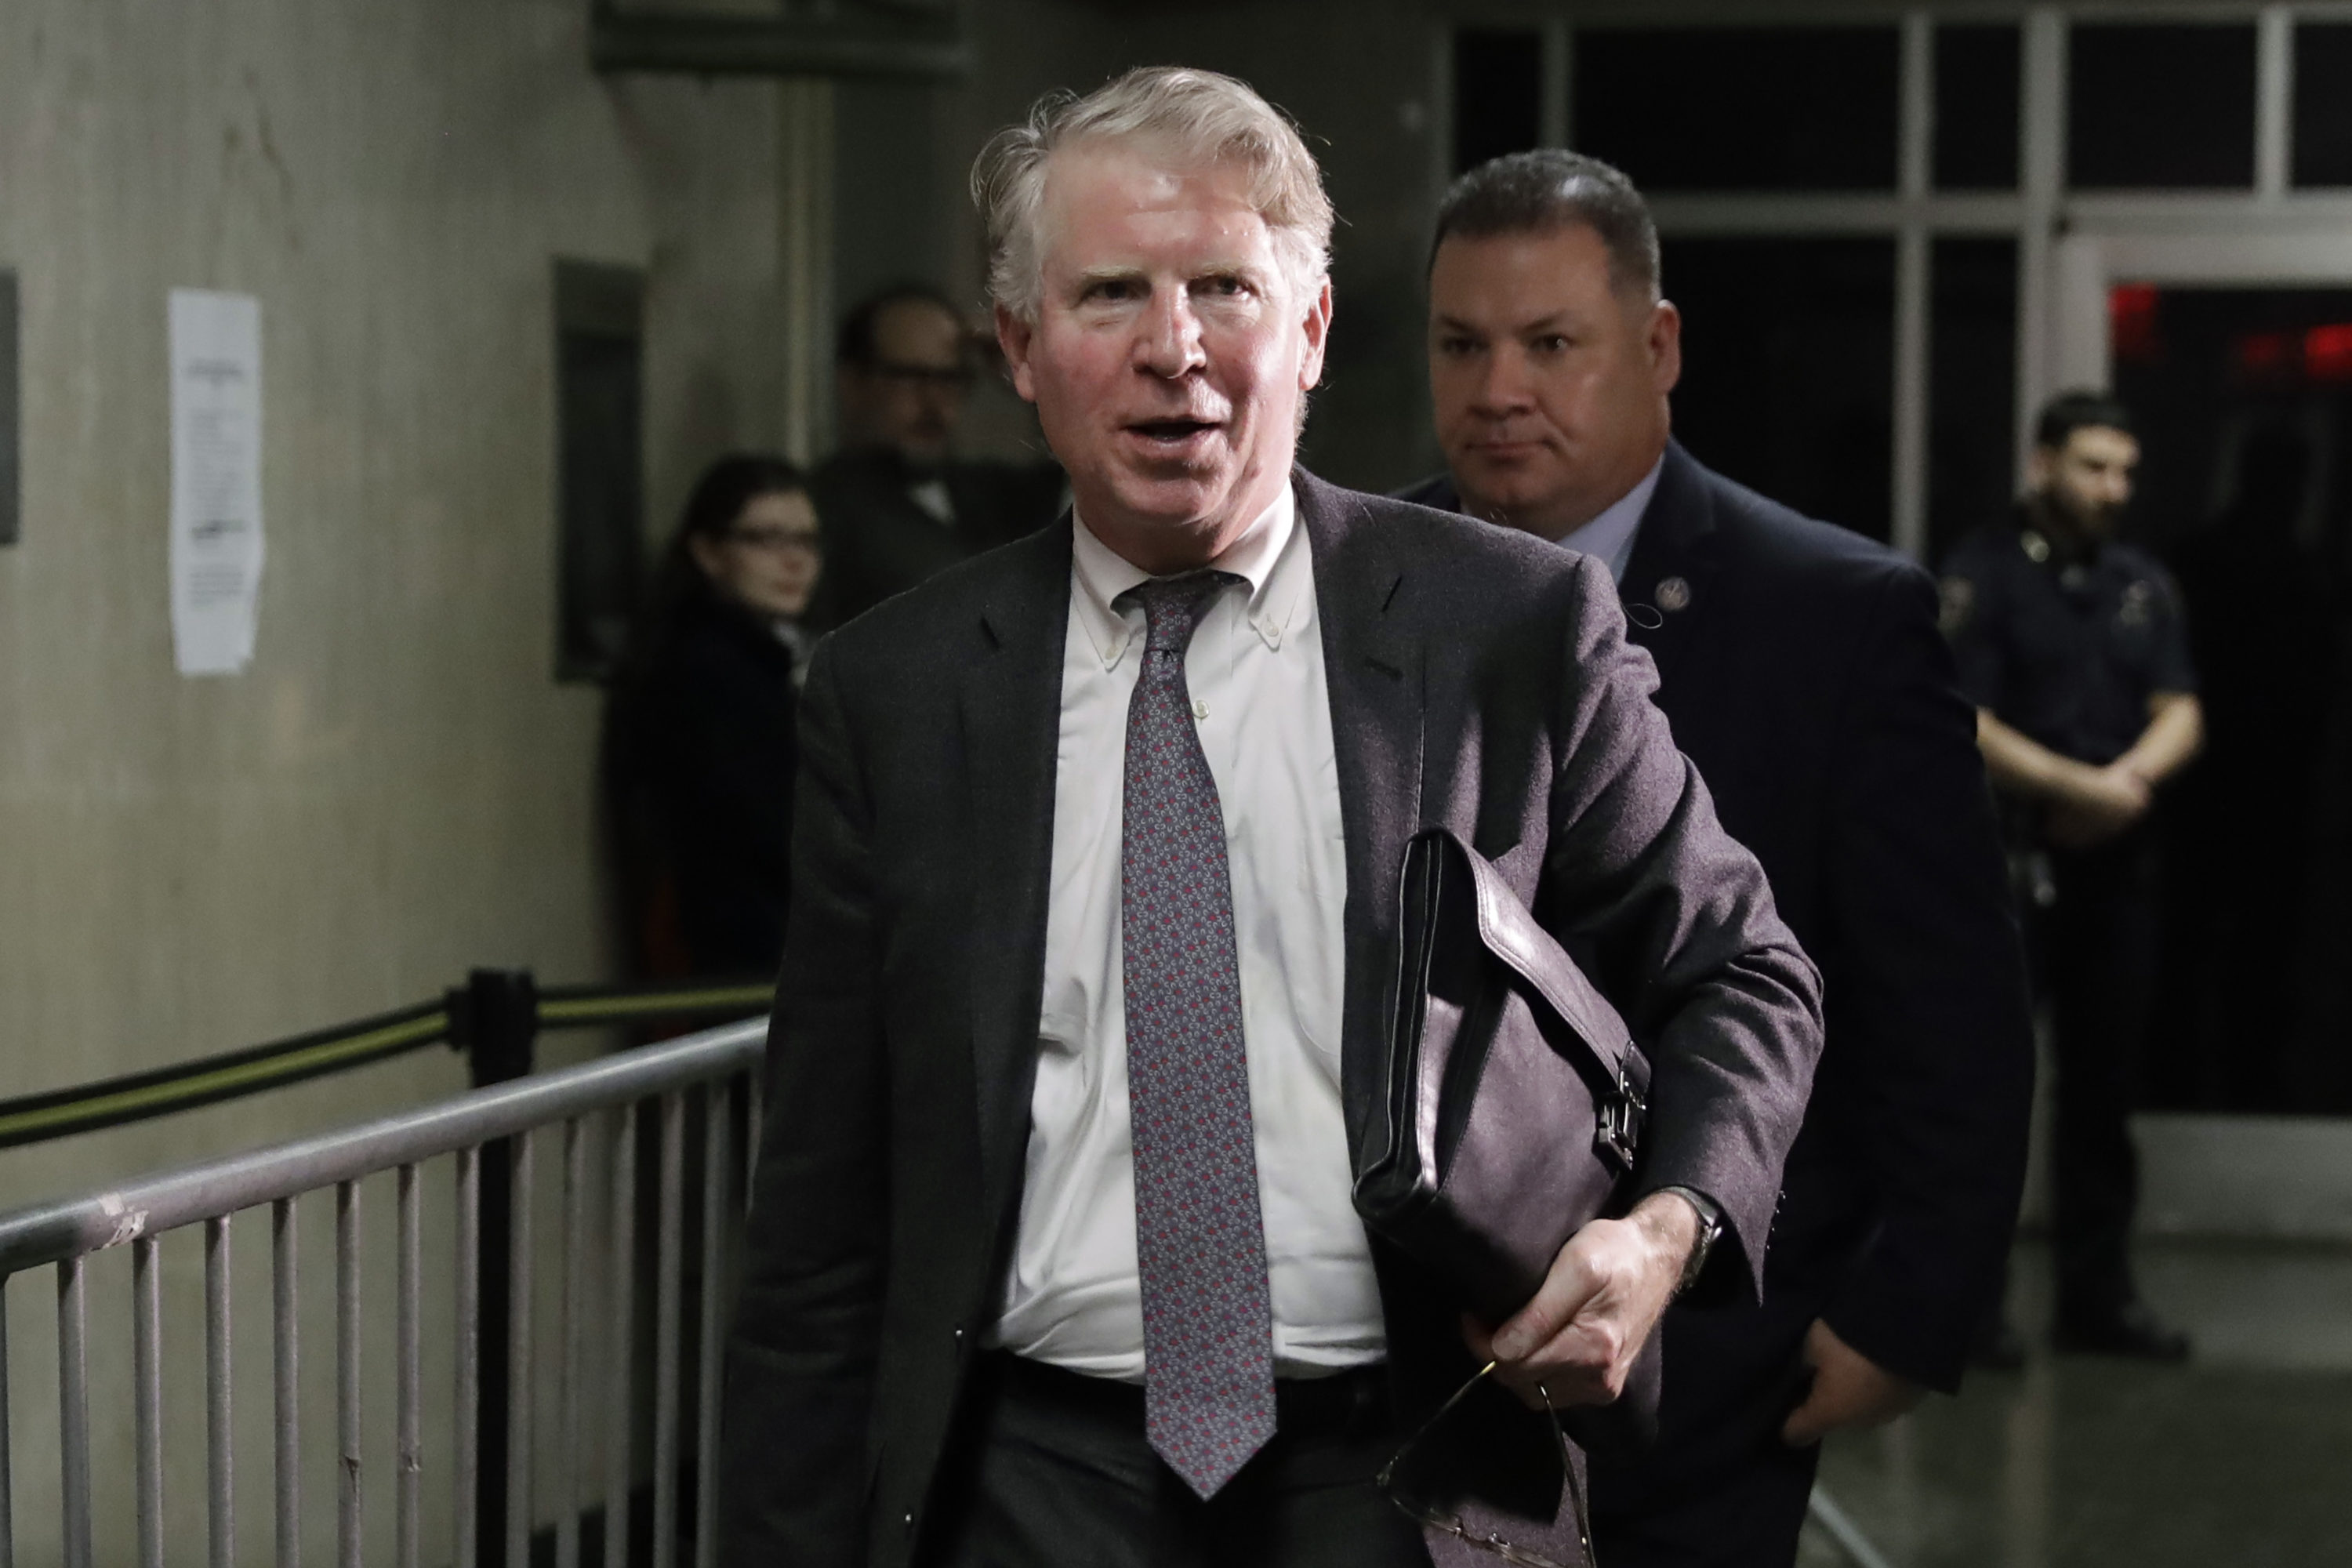 Judge clears way for Manhattan's top prosecutor to get Trump tax returns